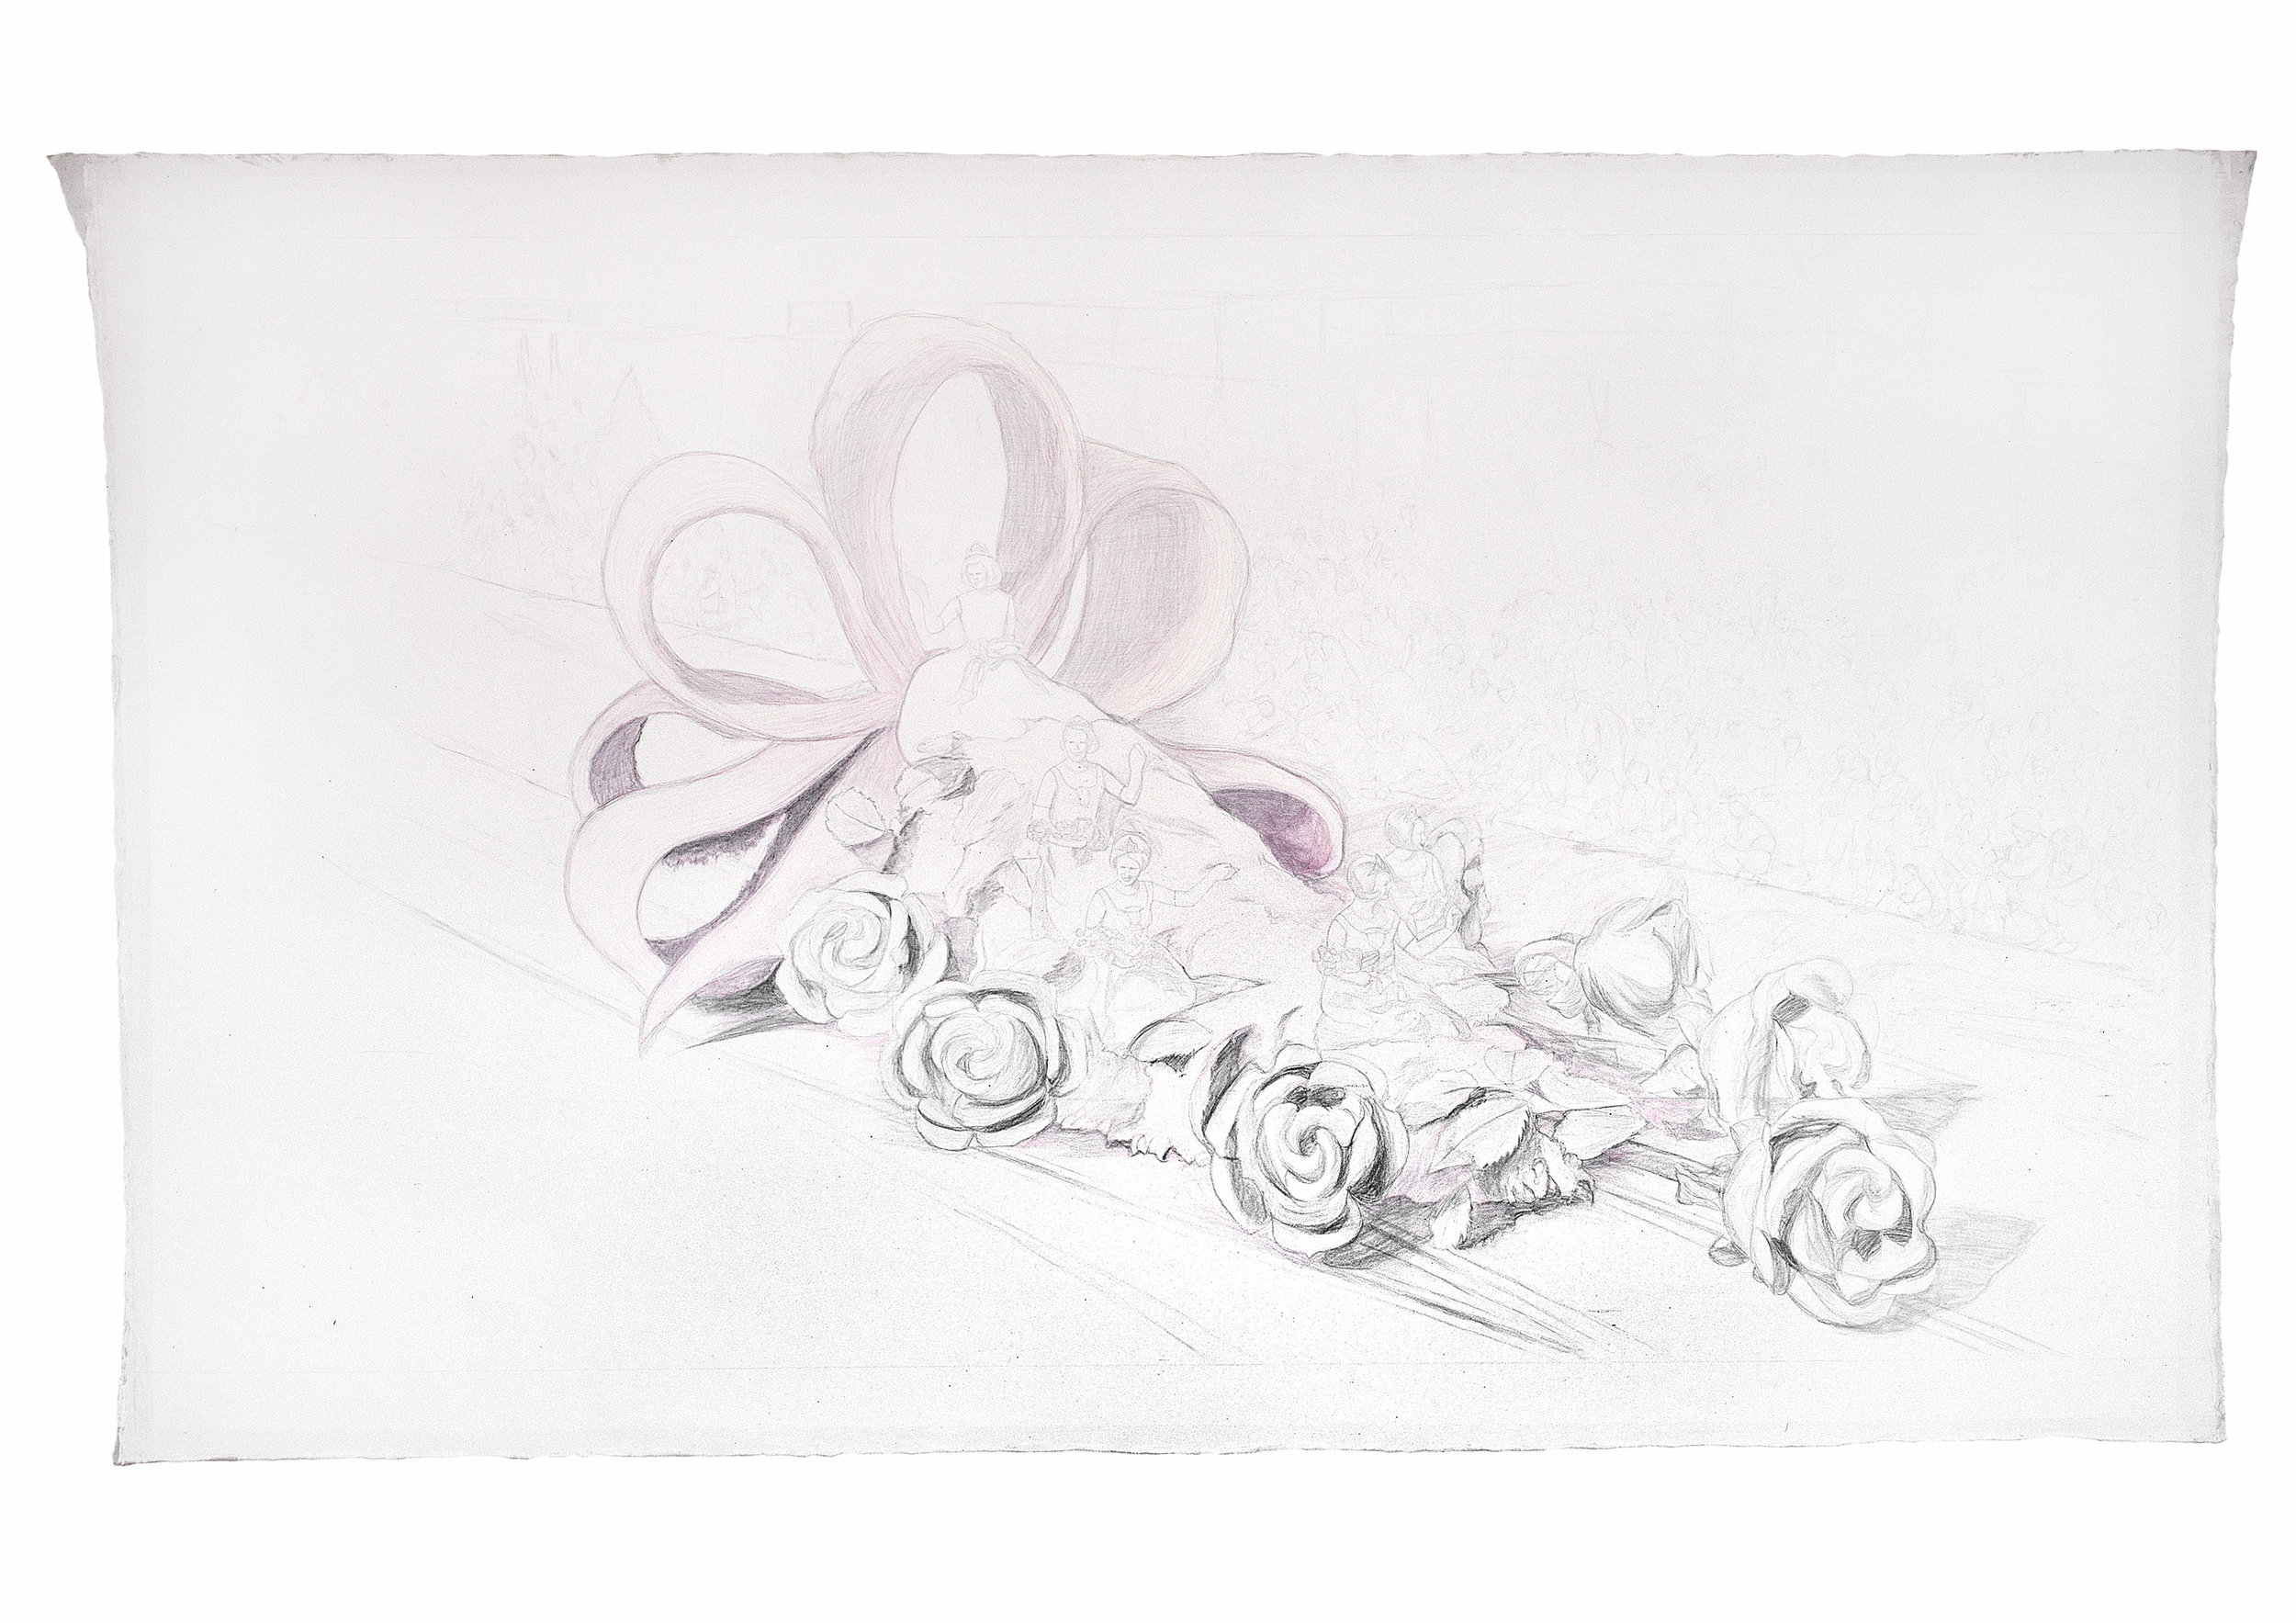 Rose Queens, 2004 graphite and pencil on canvas 277 x 497 cm - 109 x 195 5/8 inches